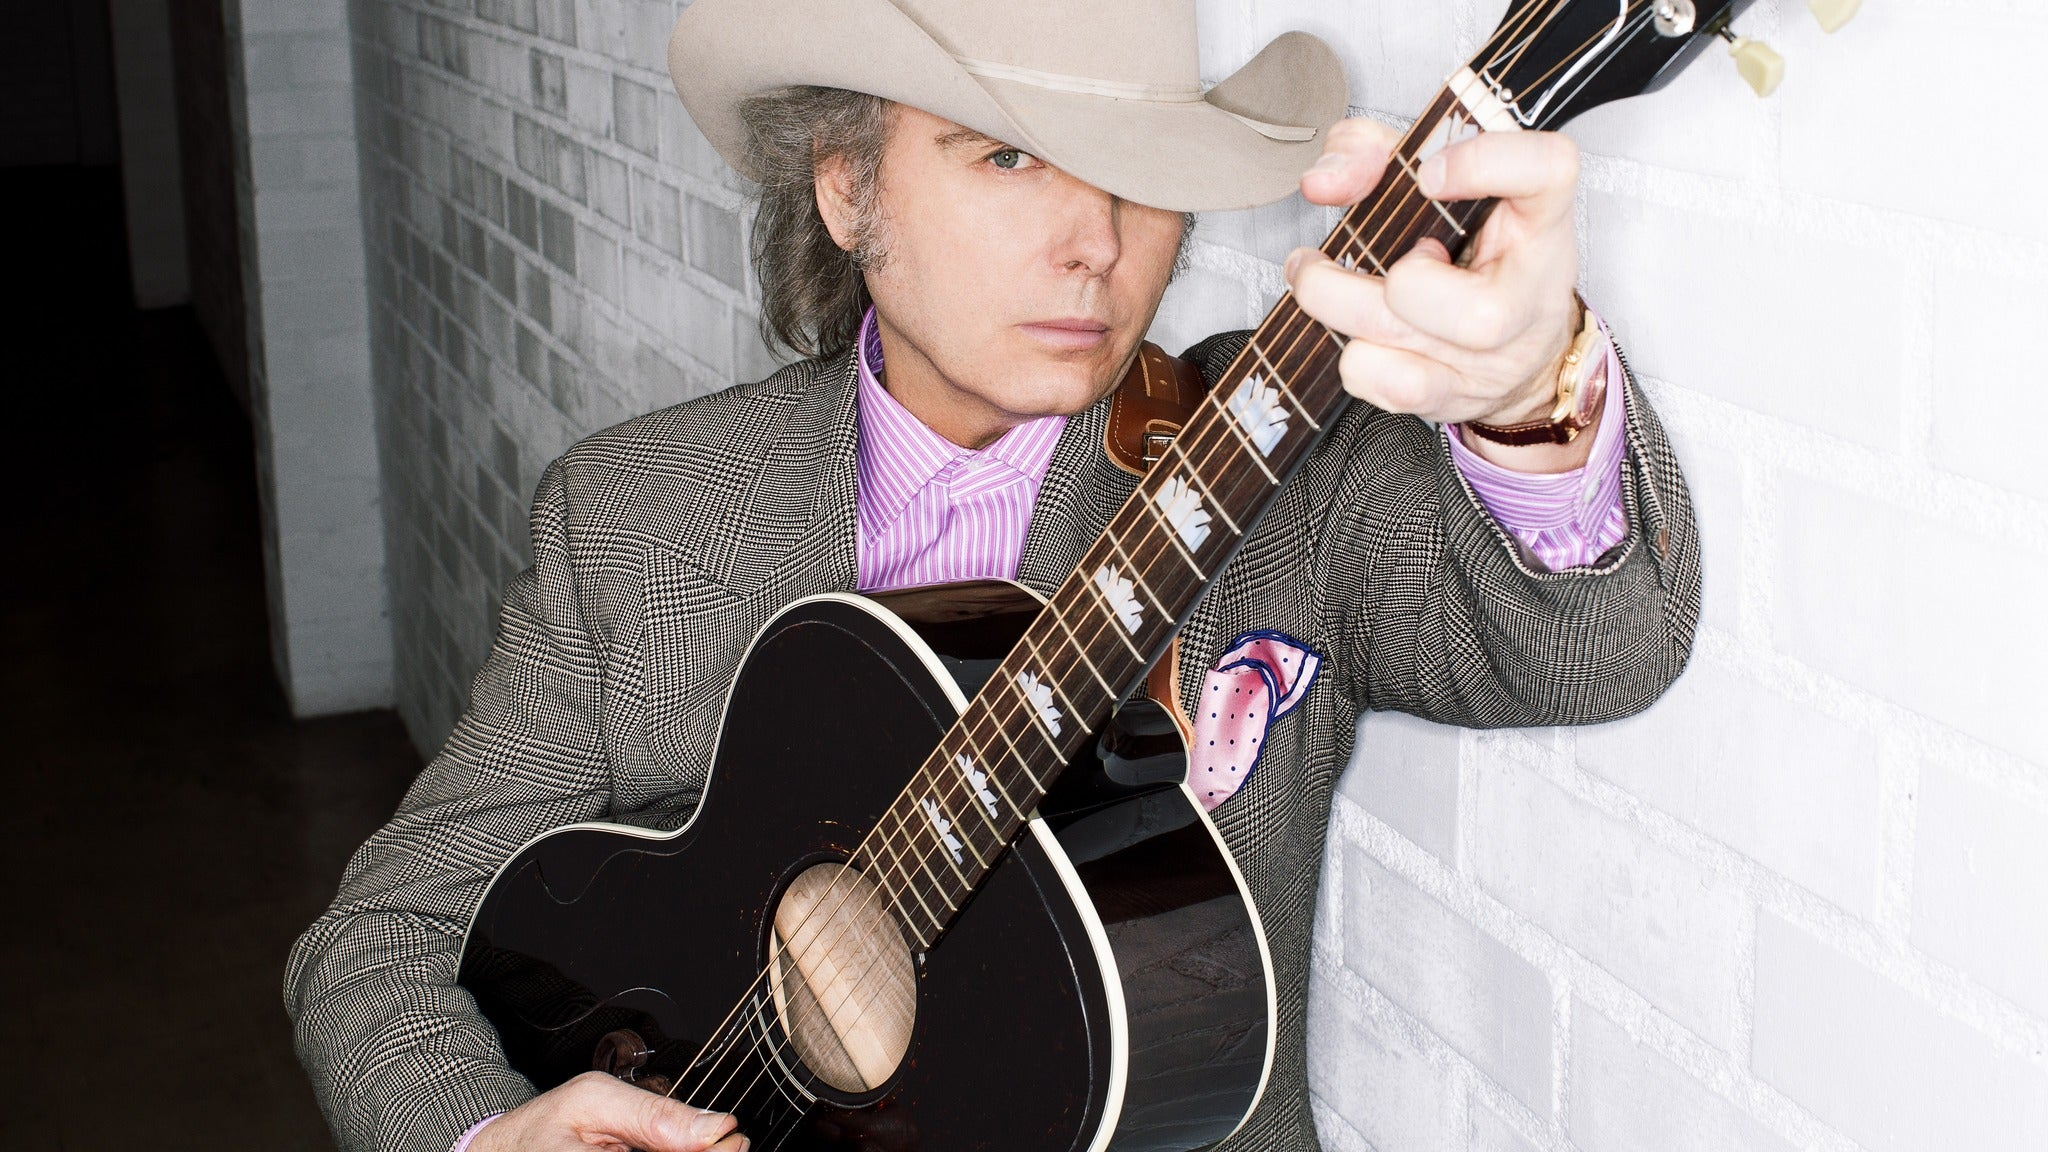 Dwight Yoakam at Miller Theater - GA